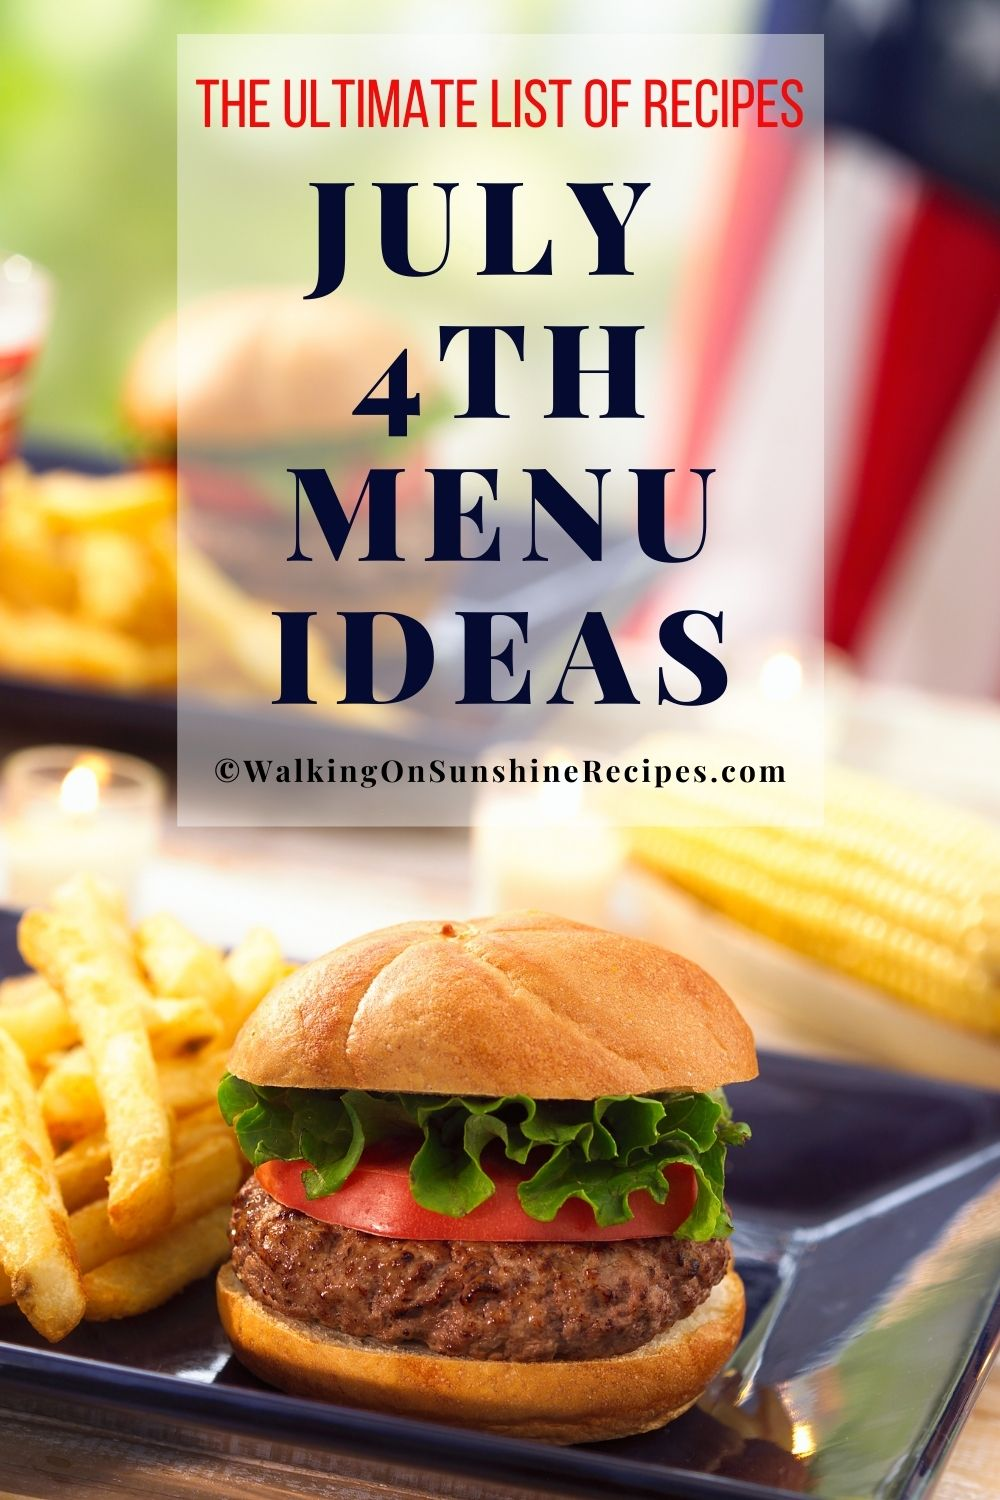 burgers, fries and American flag.